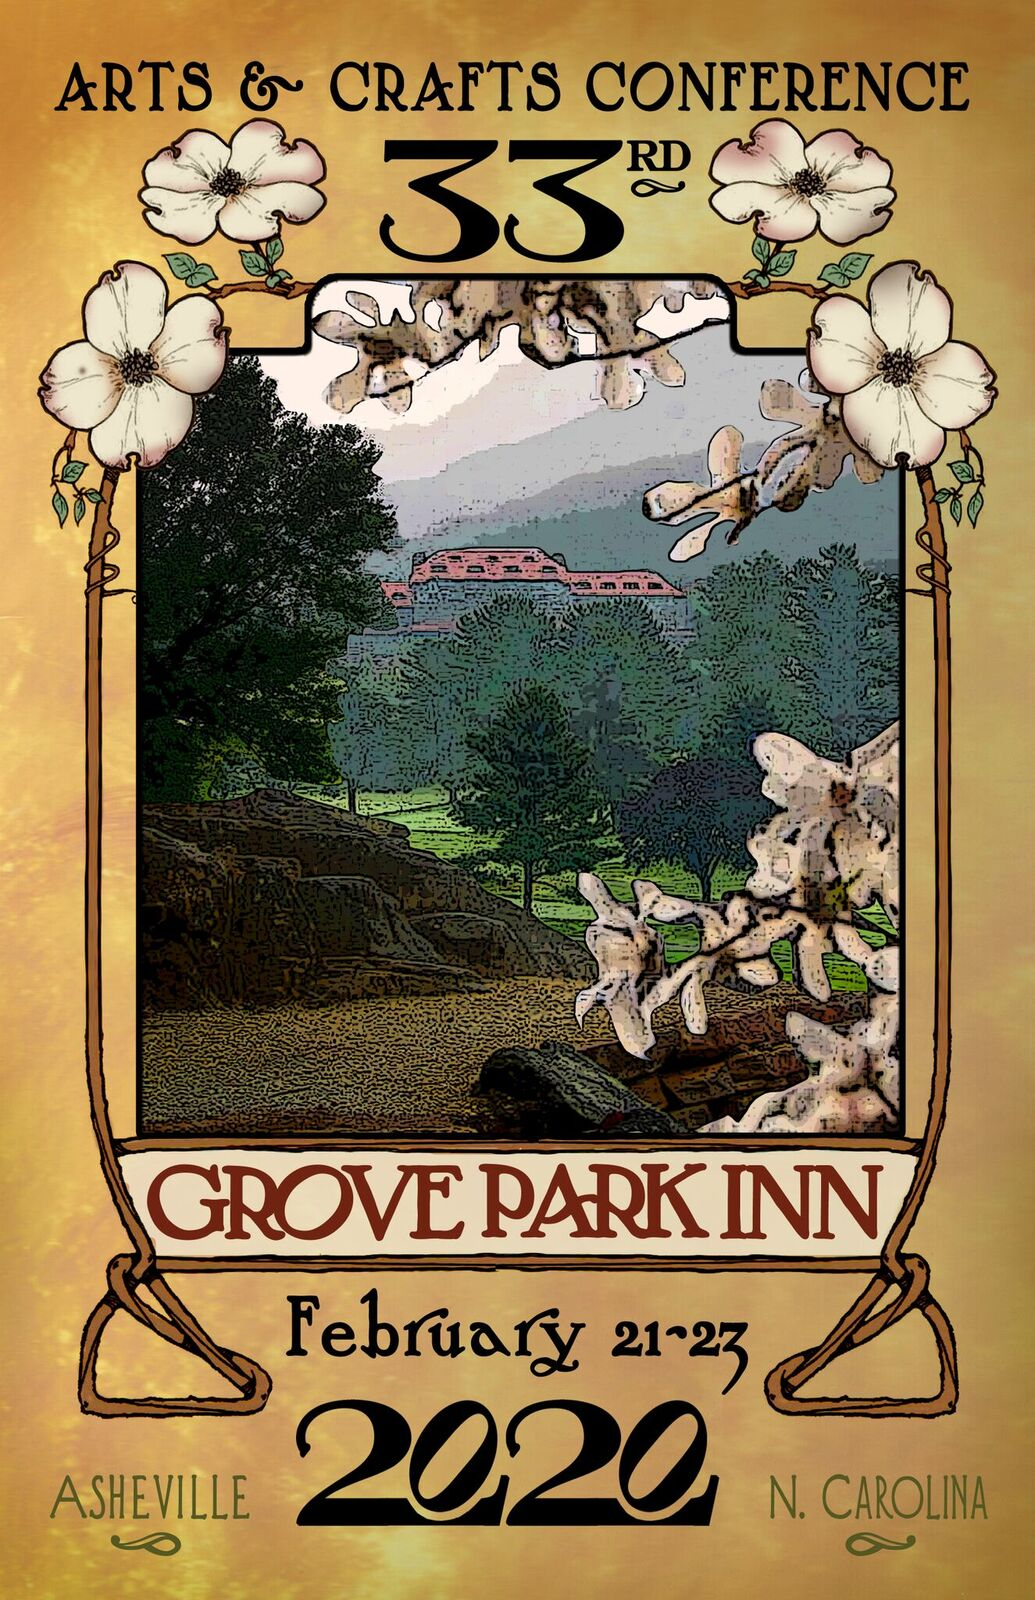 The 33rd Annual Grove Park Inn Arts & Crafts Conference 2020